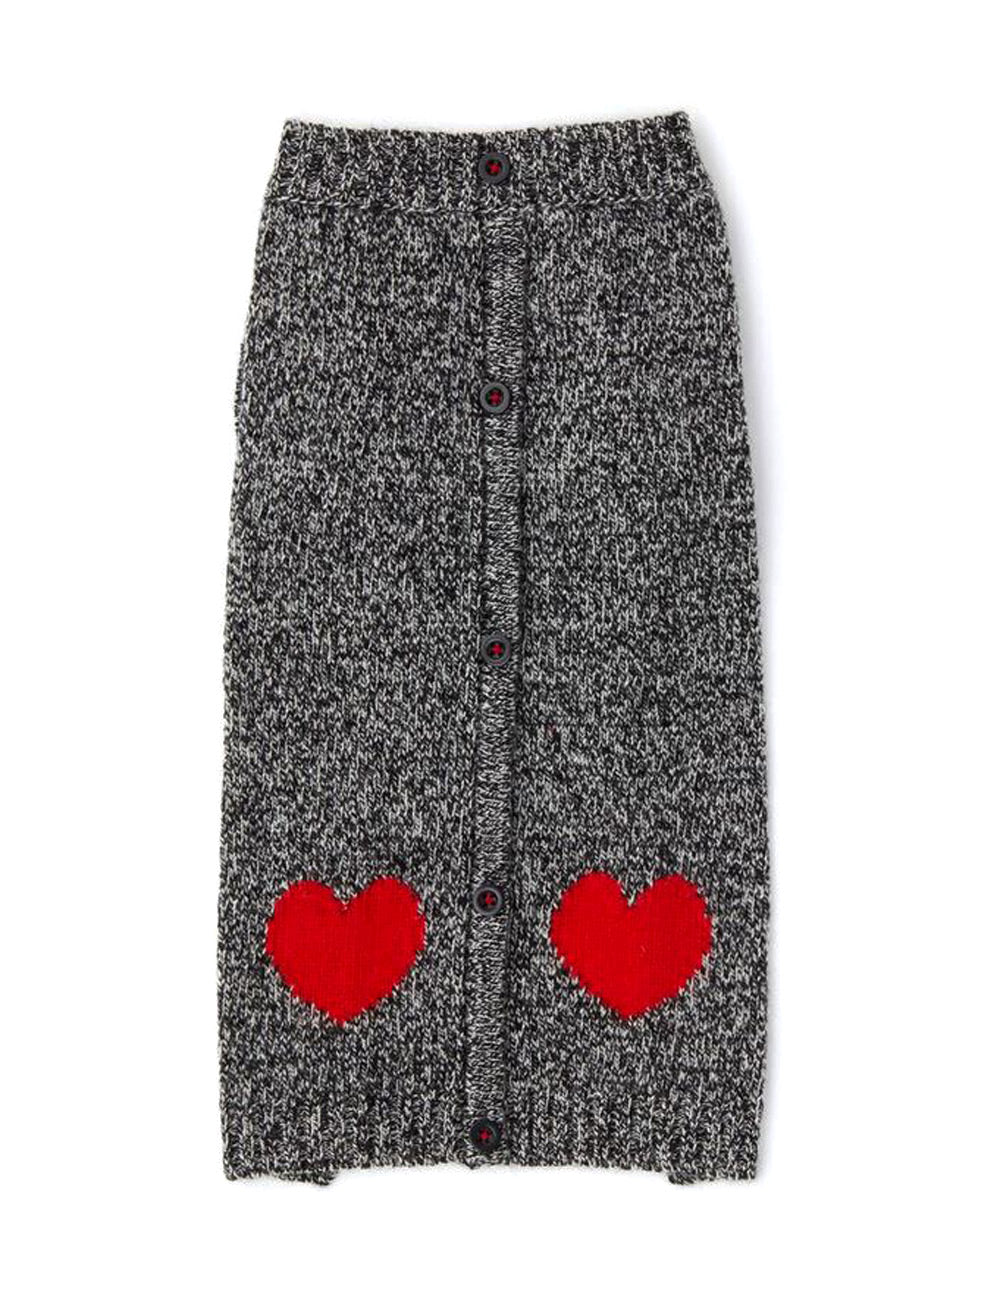 Heart Cardigan | Grey & Red